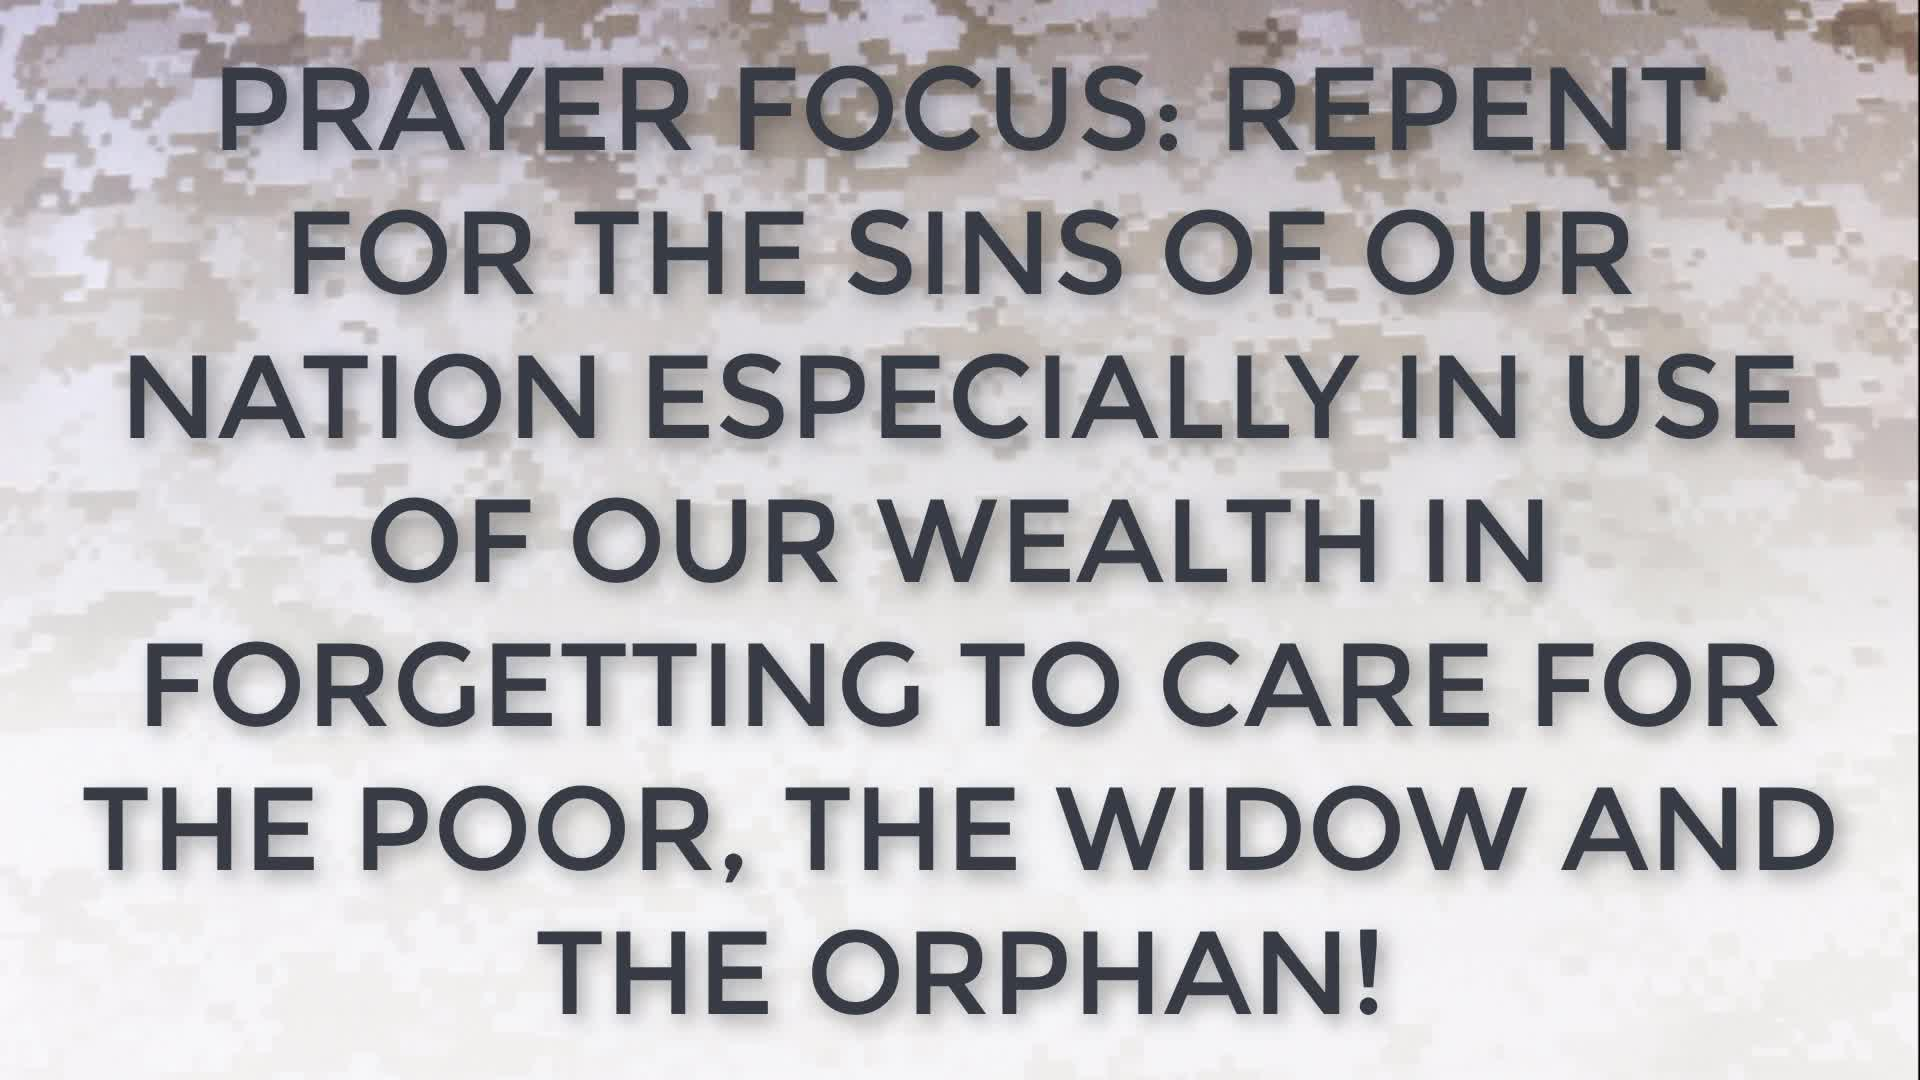 PRAYER FOCUS REPENT FOR THE SINS OF OUR NATION